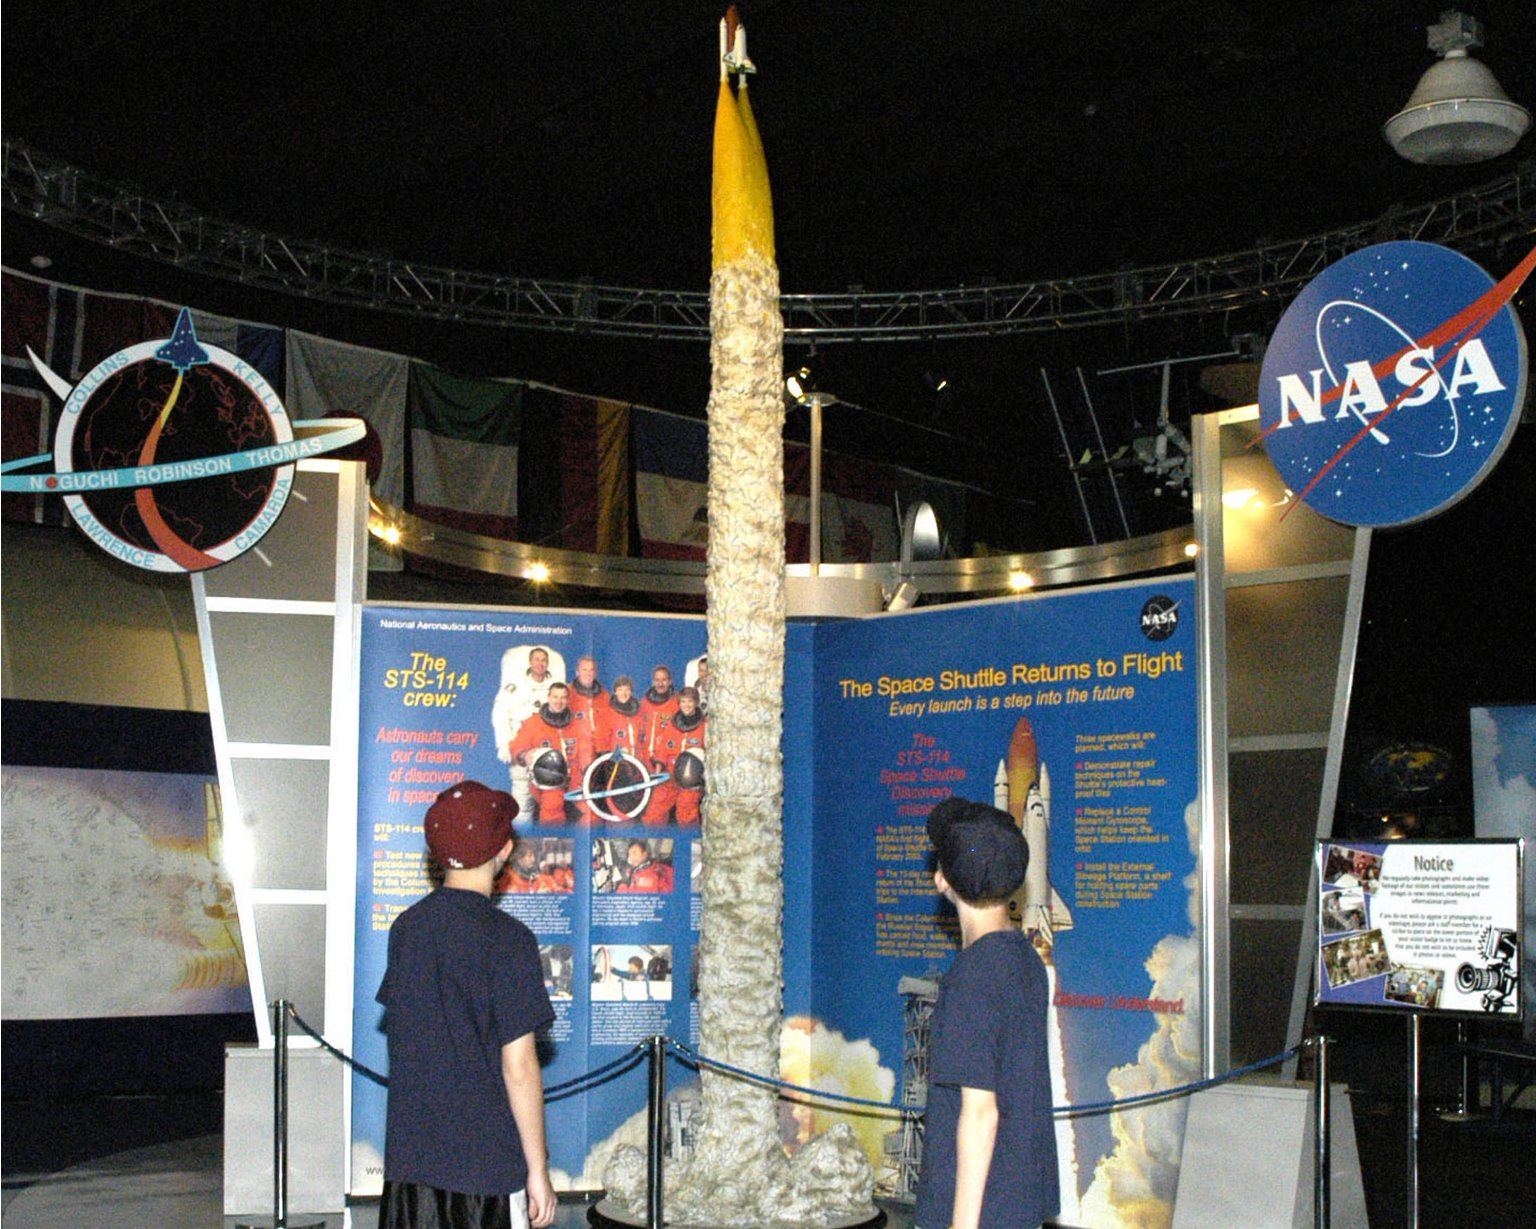 Visitors learn about Return to Flight at StenniSphere